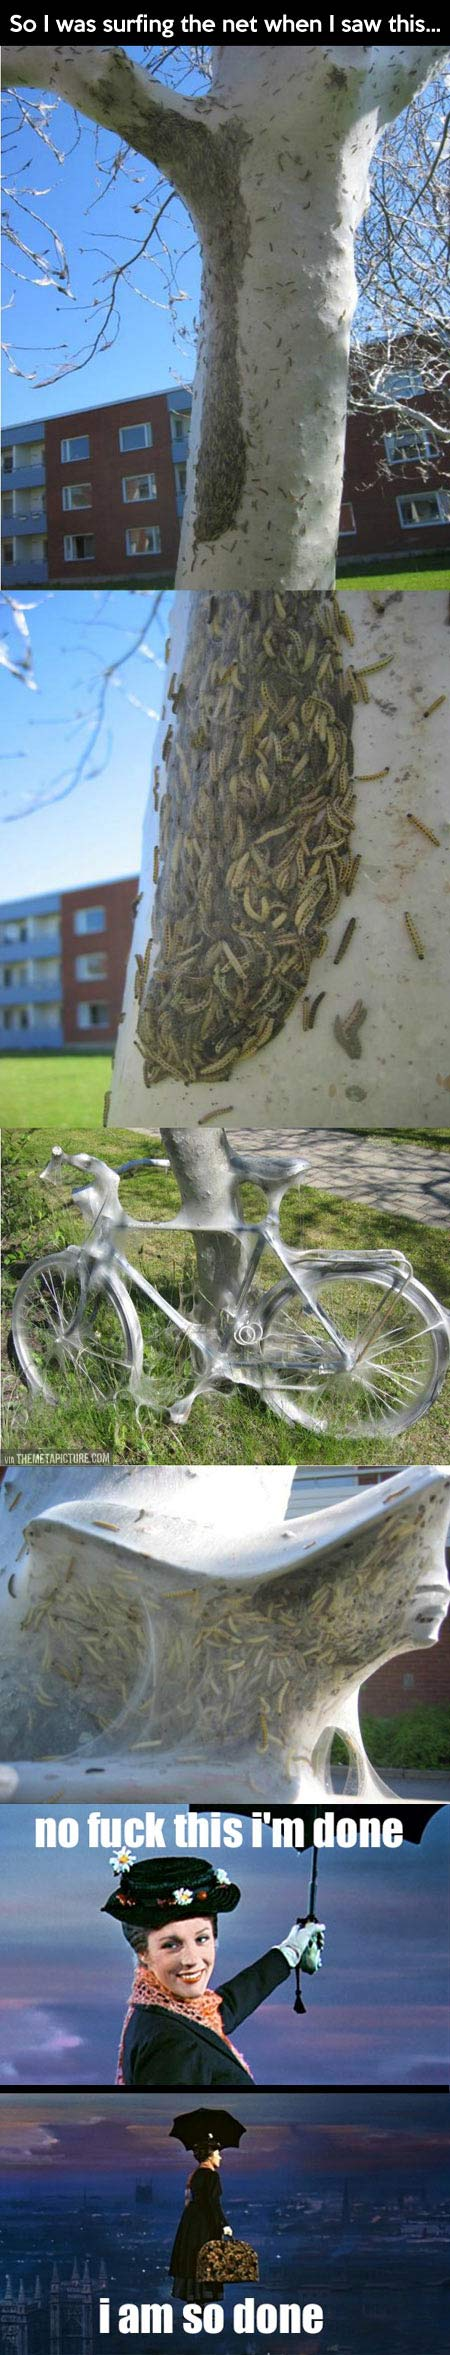 funny-nature-worms-tree-bike